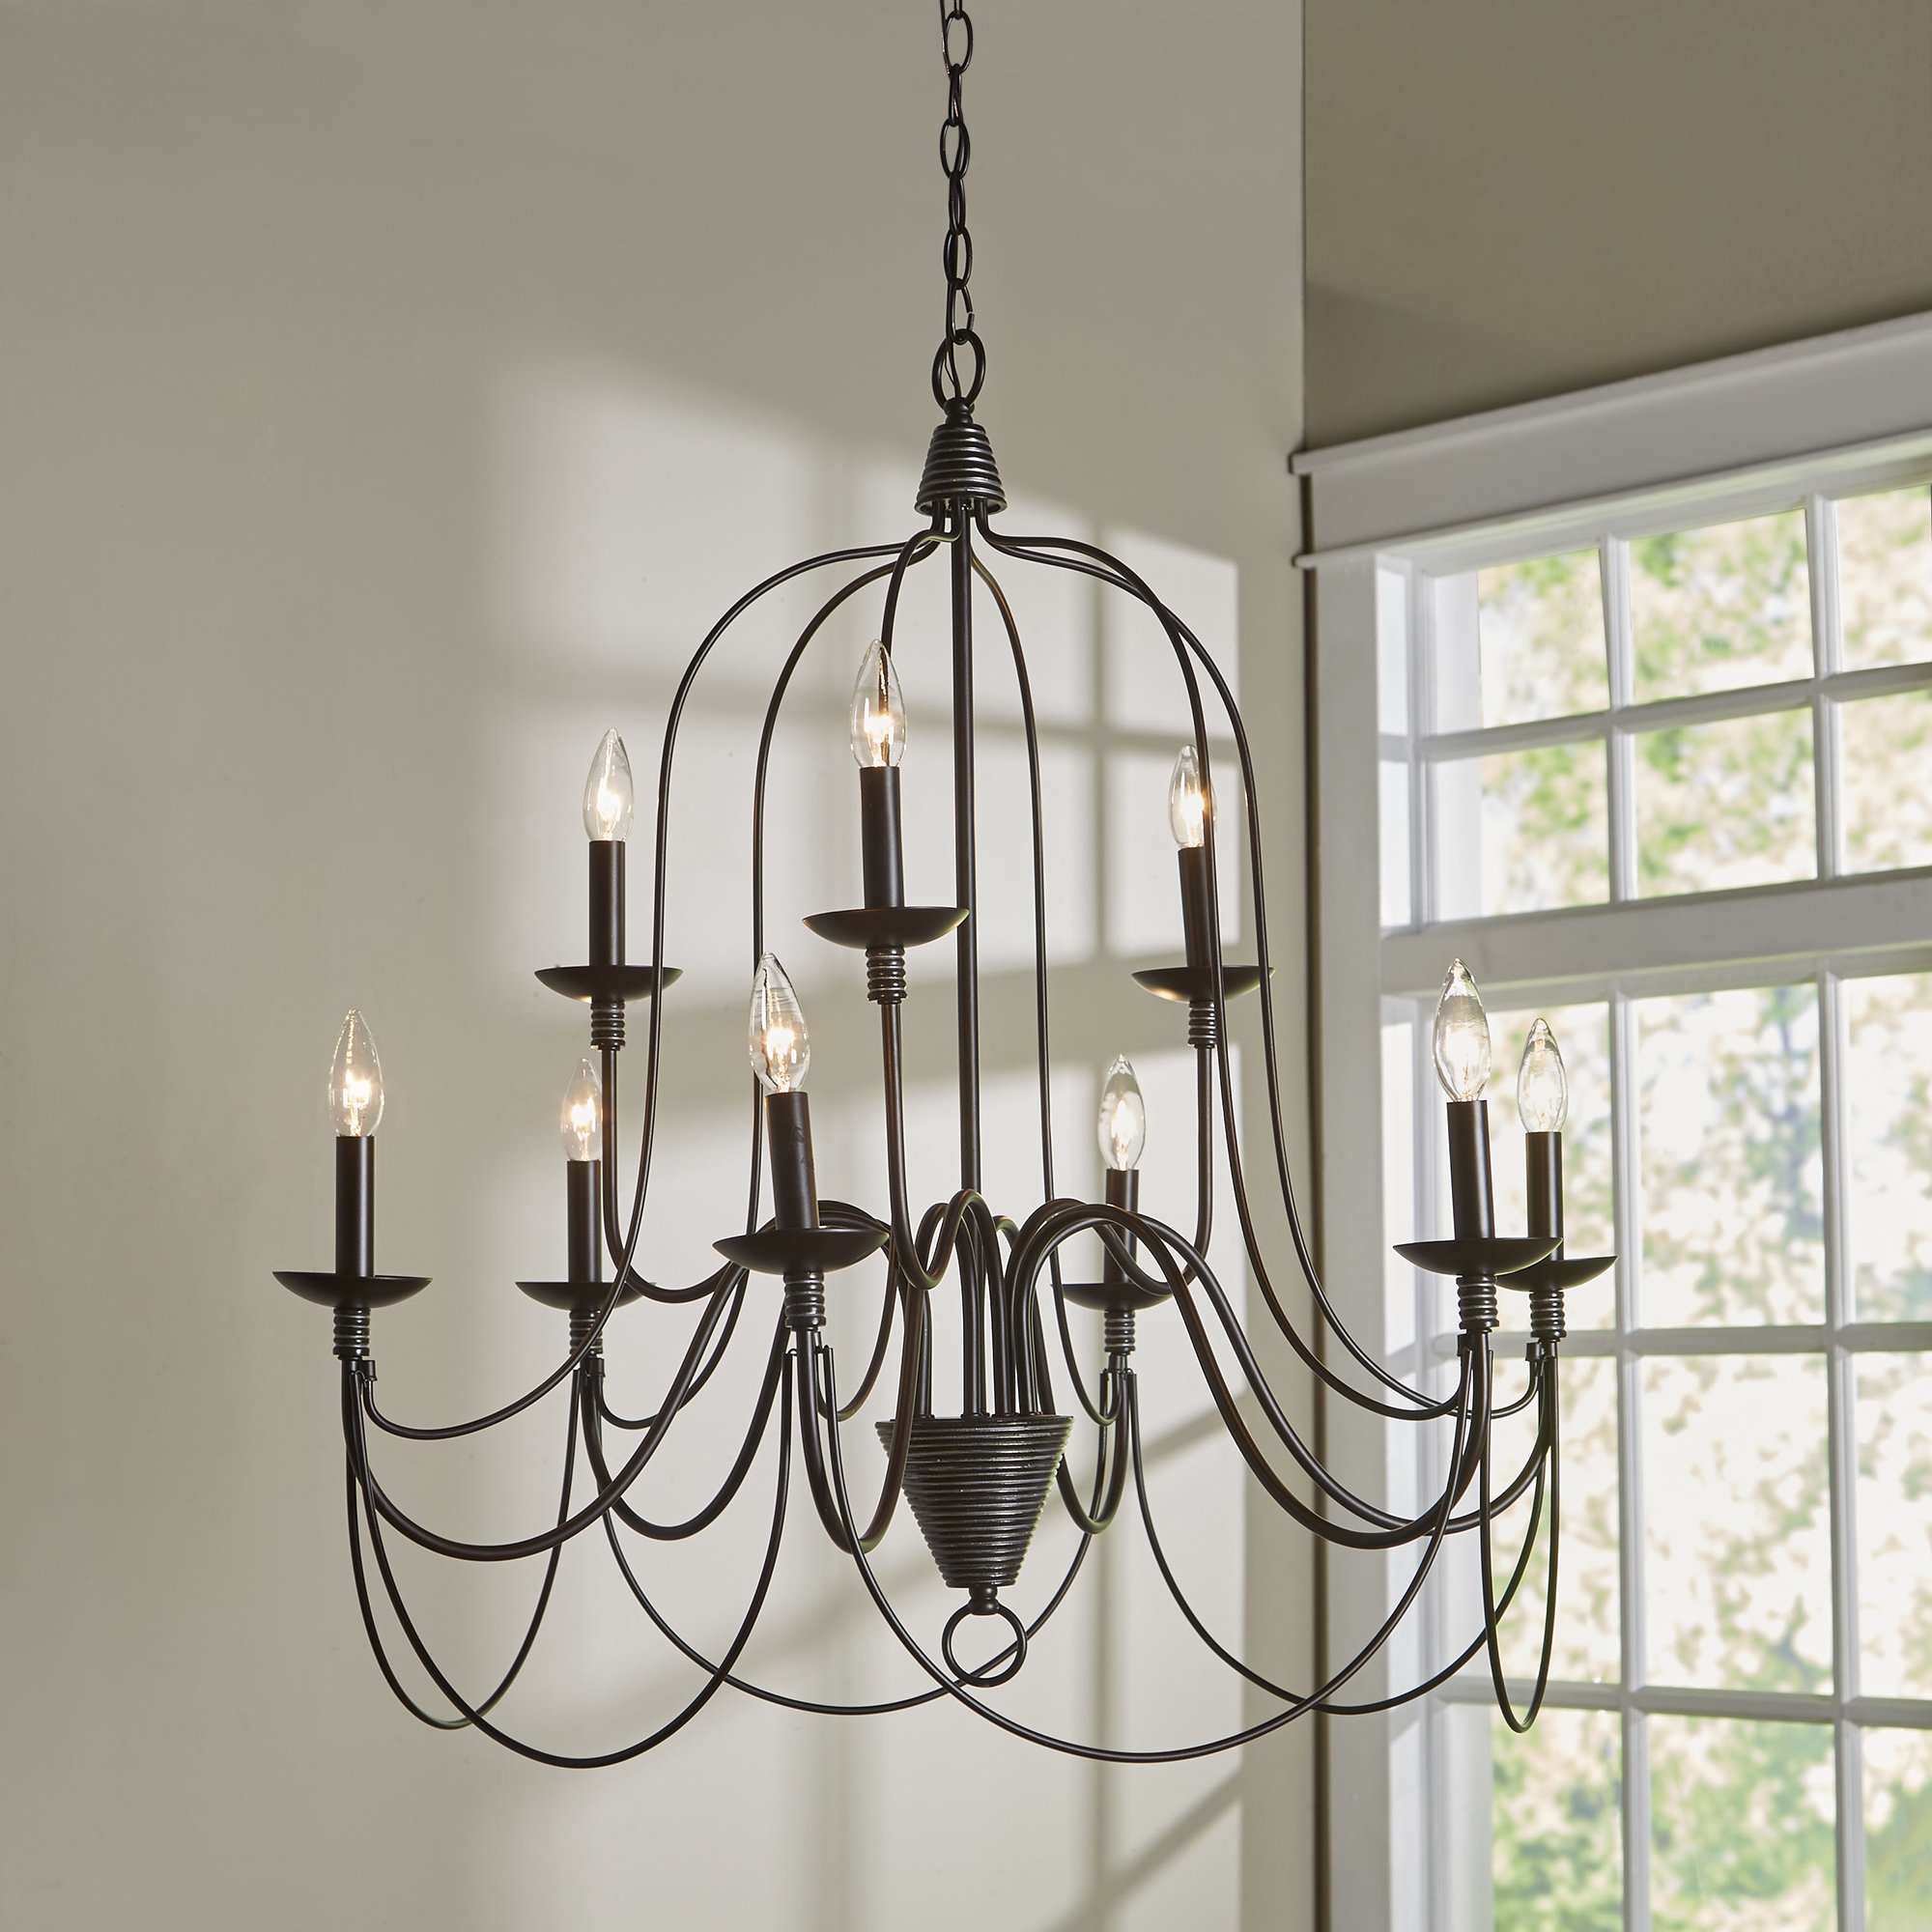 Watford 9 Light Candle Style Chandelier For Well Known Watford 6 Light Candle Style Chandeliers (View 3 of 20)